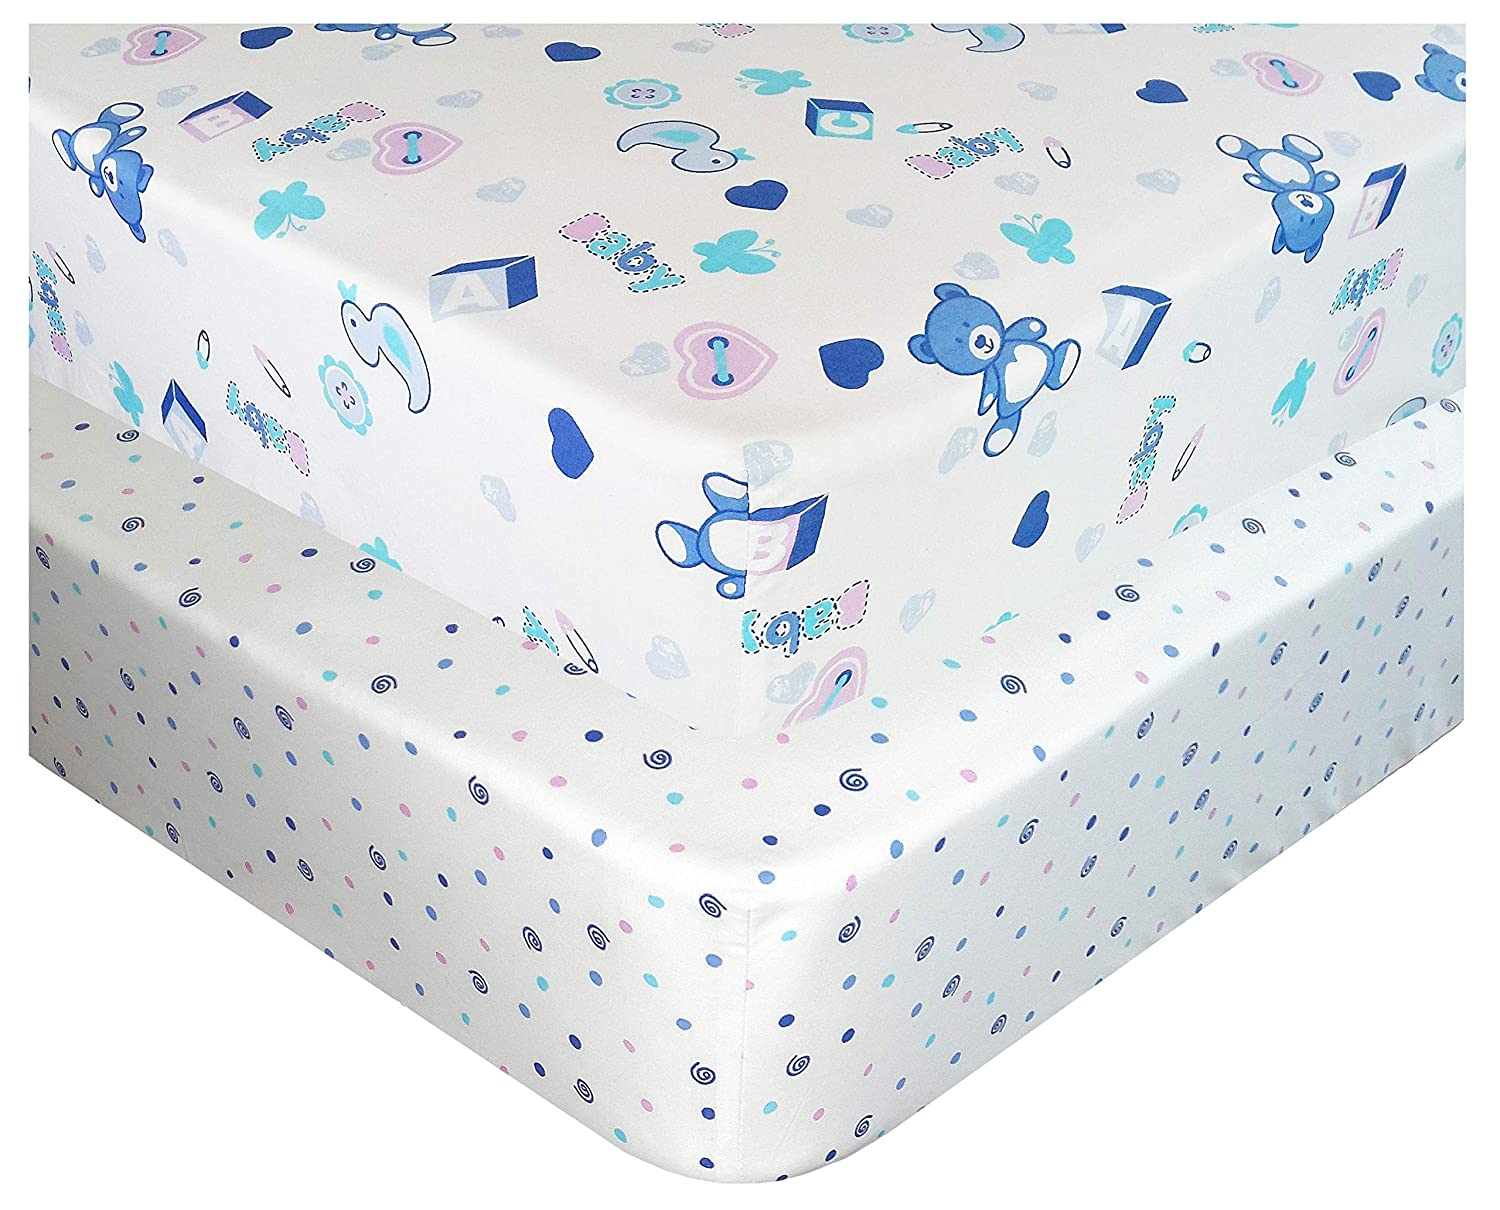 Handywa - 100% Cotton Fitted Crib Sheets Set for Baby & Toddler Bed Mattress - Blue Teddy Bear and Polka-Dot (2 Pack) - White Color for Boy and Girl Nursery - Soft, Breathable, Hypoallergenic